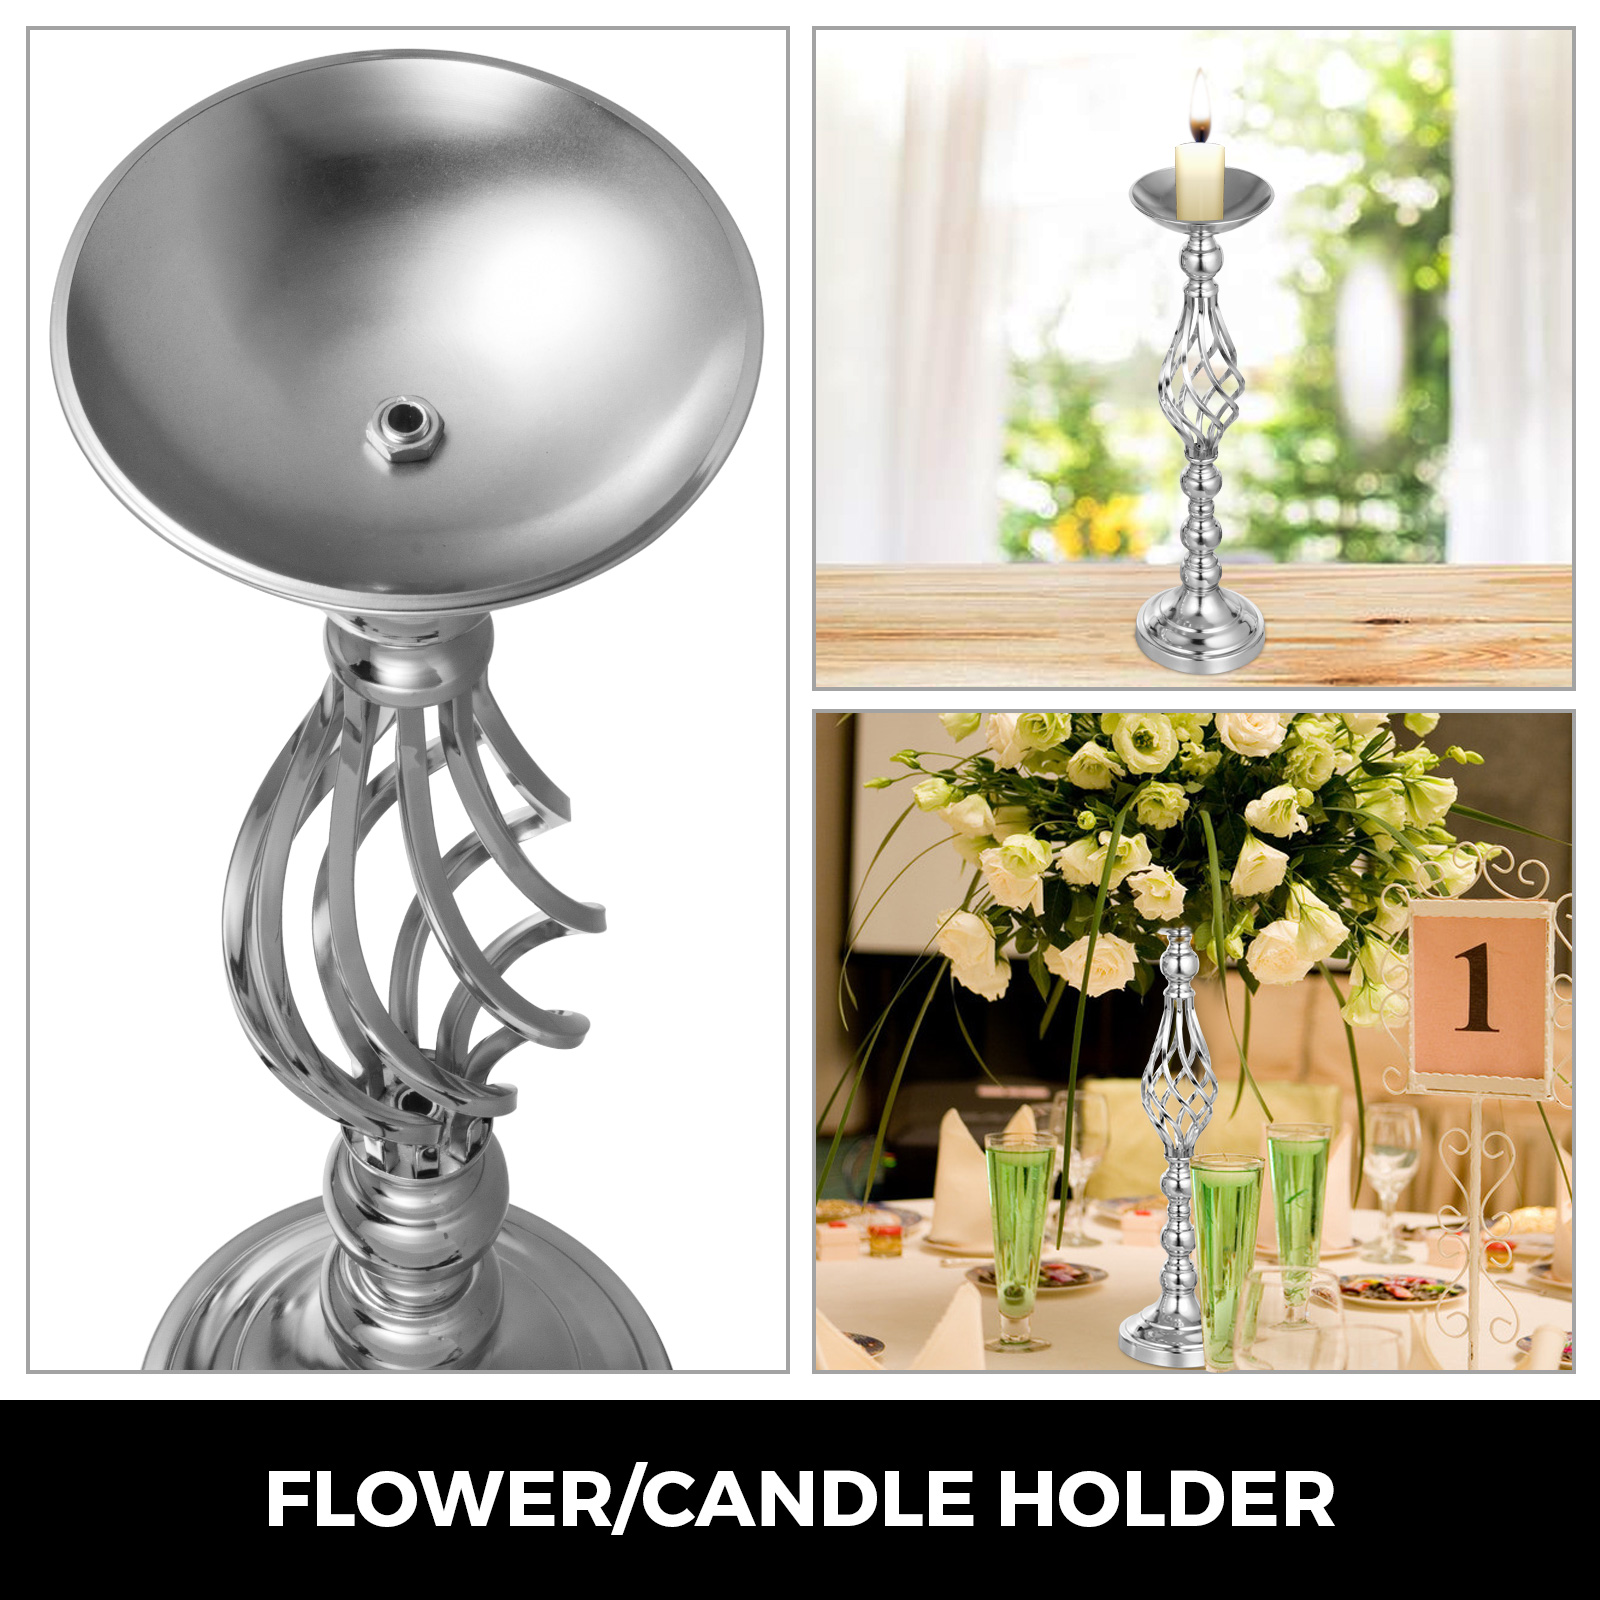 Flower-Rack-for-Wedding-Metal-Candle-Stand-4-11pcs-Centerpiece-Flower-Vase thumbnail 87